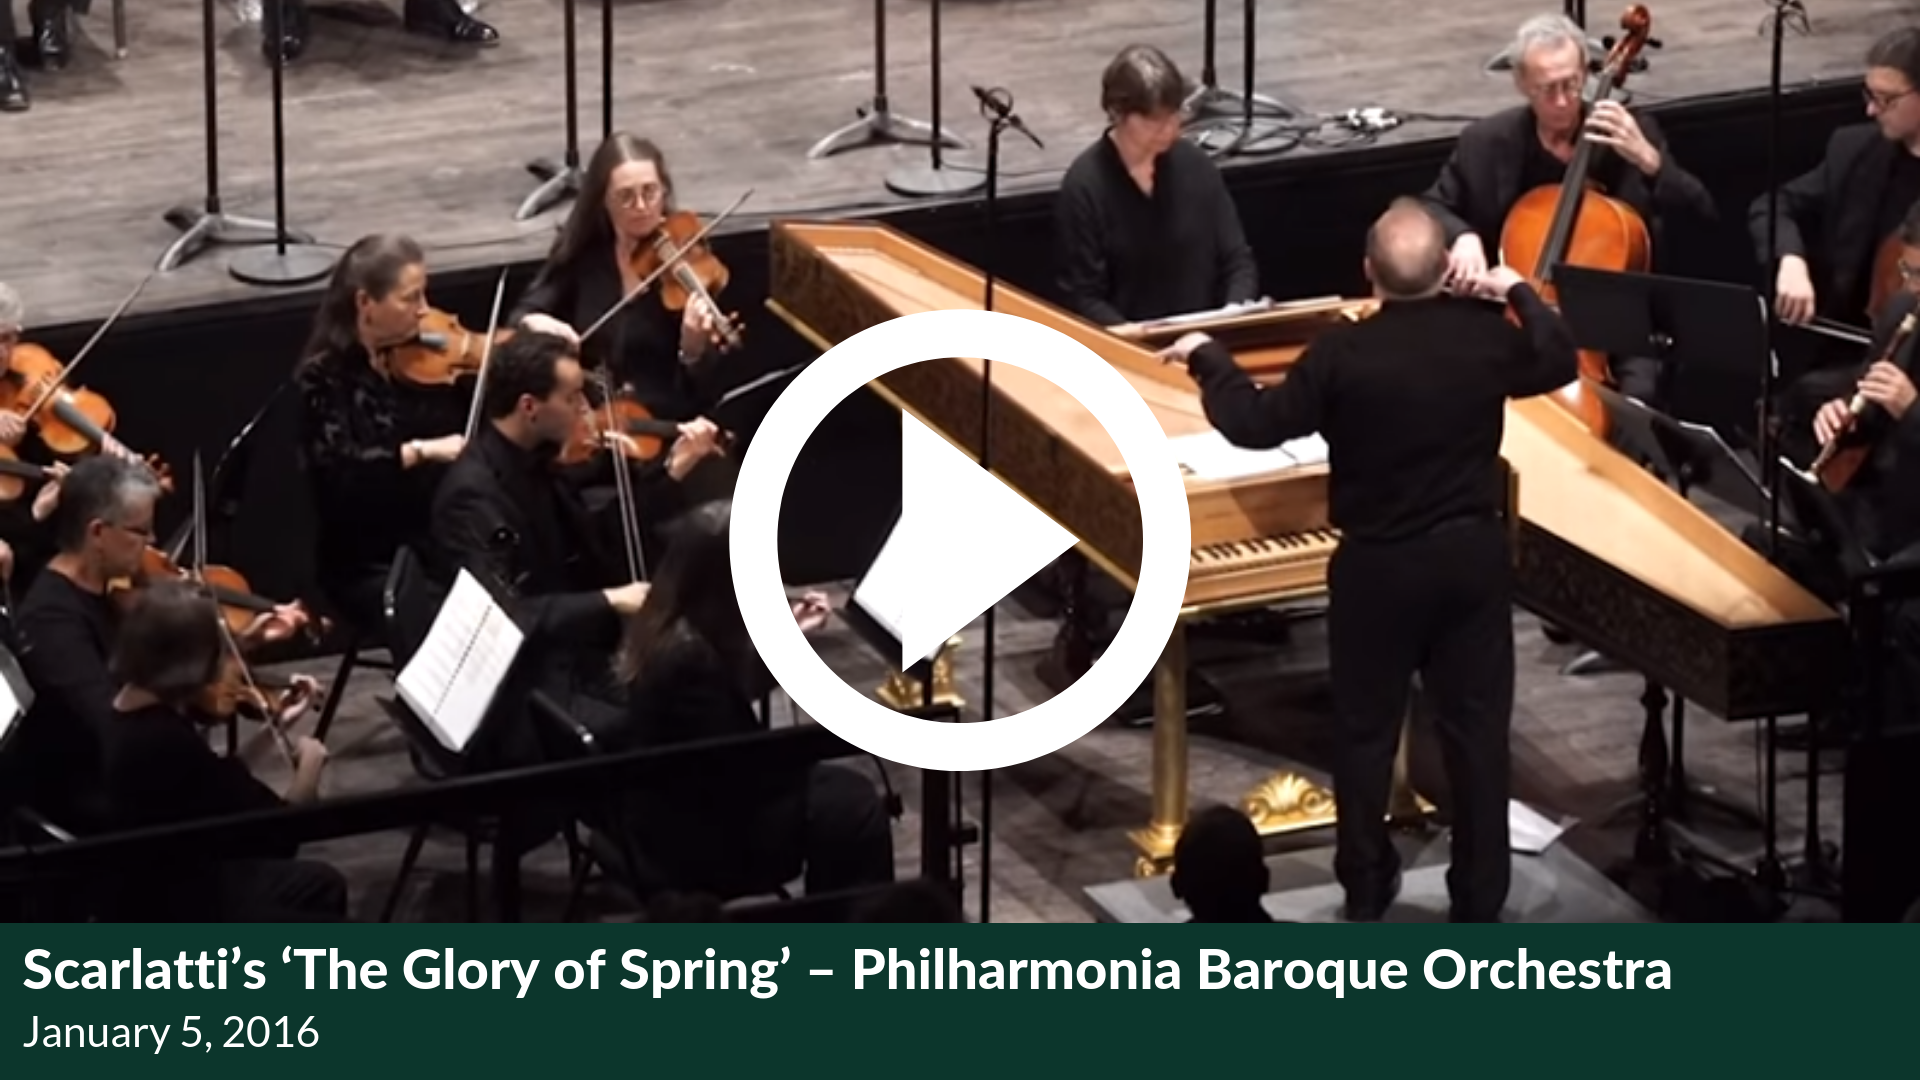 Scarlatti's 'The Glory of Spring' – Philharmonia Baroque Orchestra